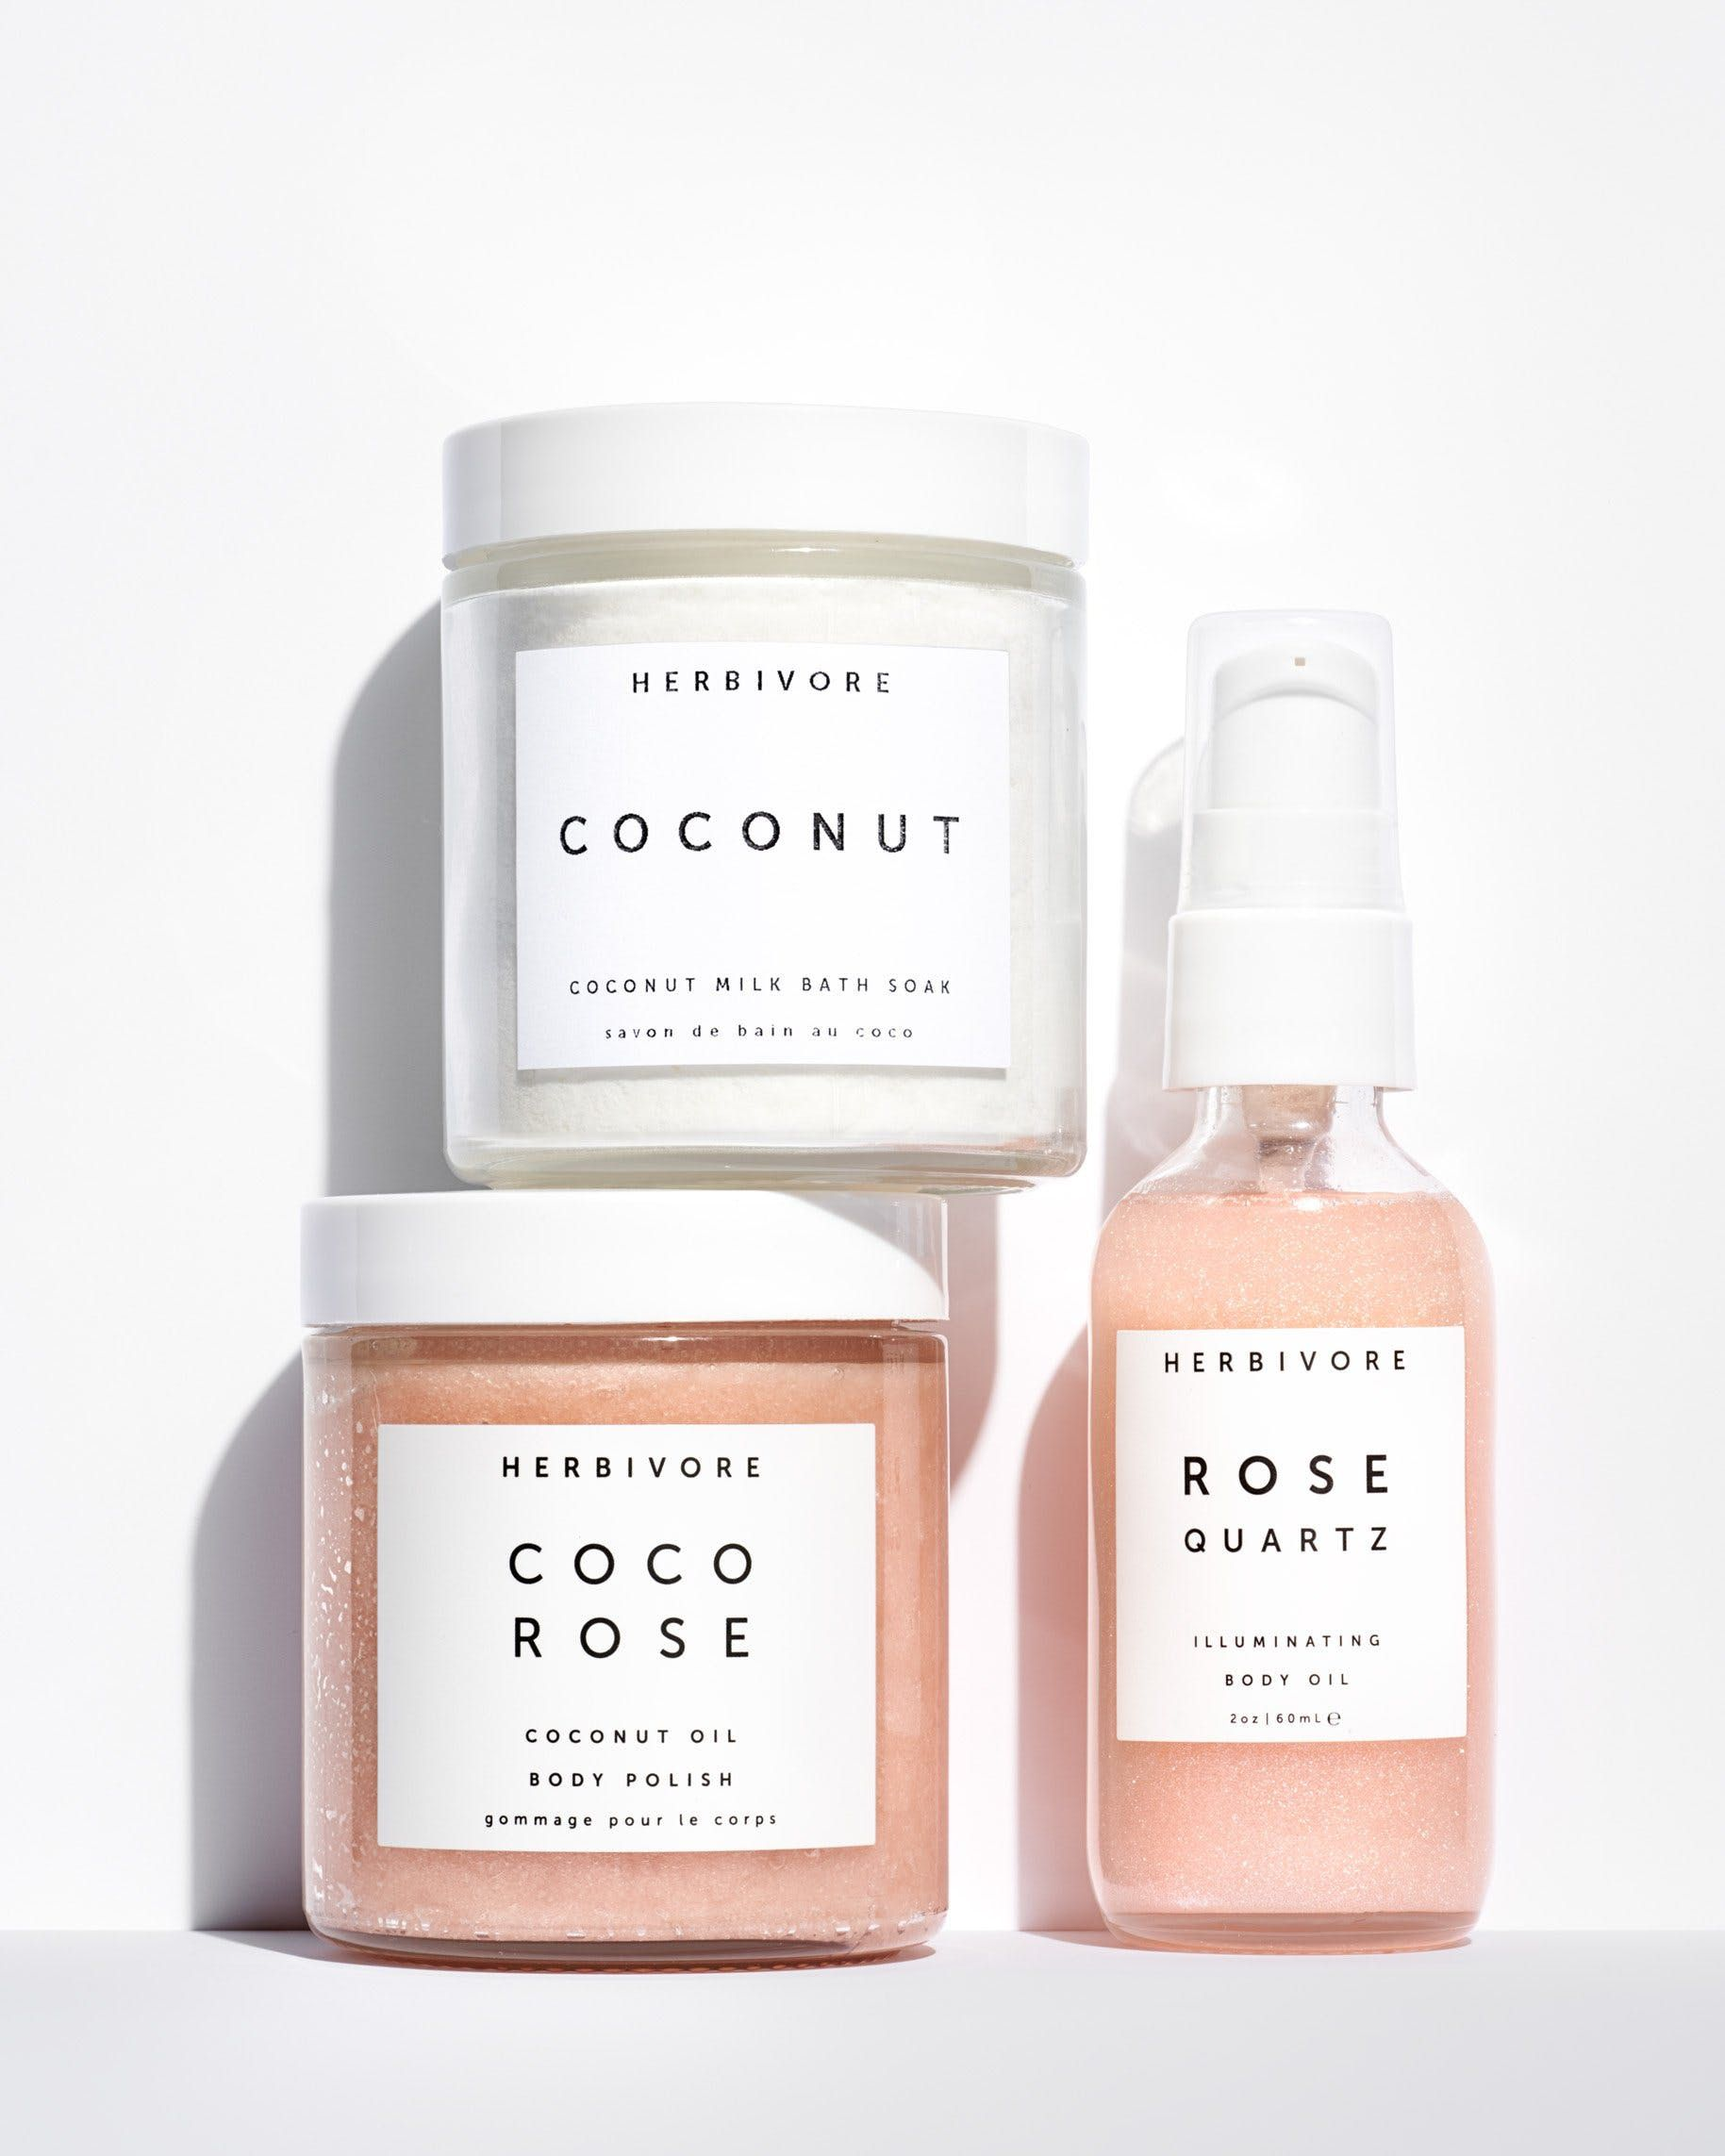 These Are the Best Beauty Buys at Sephora This Holiday Season   Brit Co